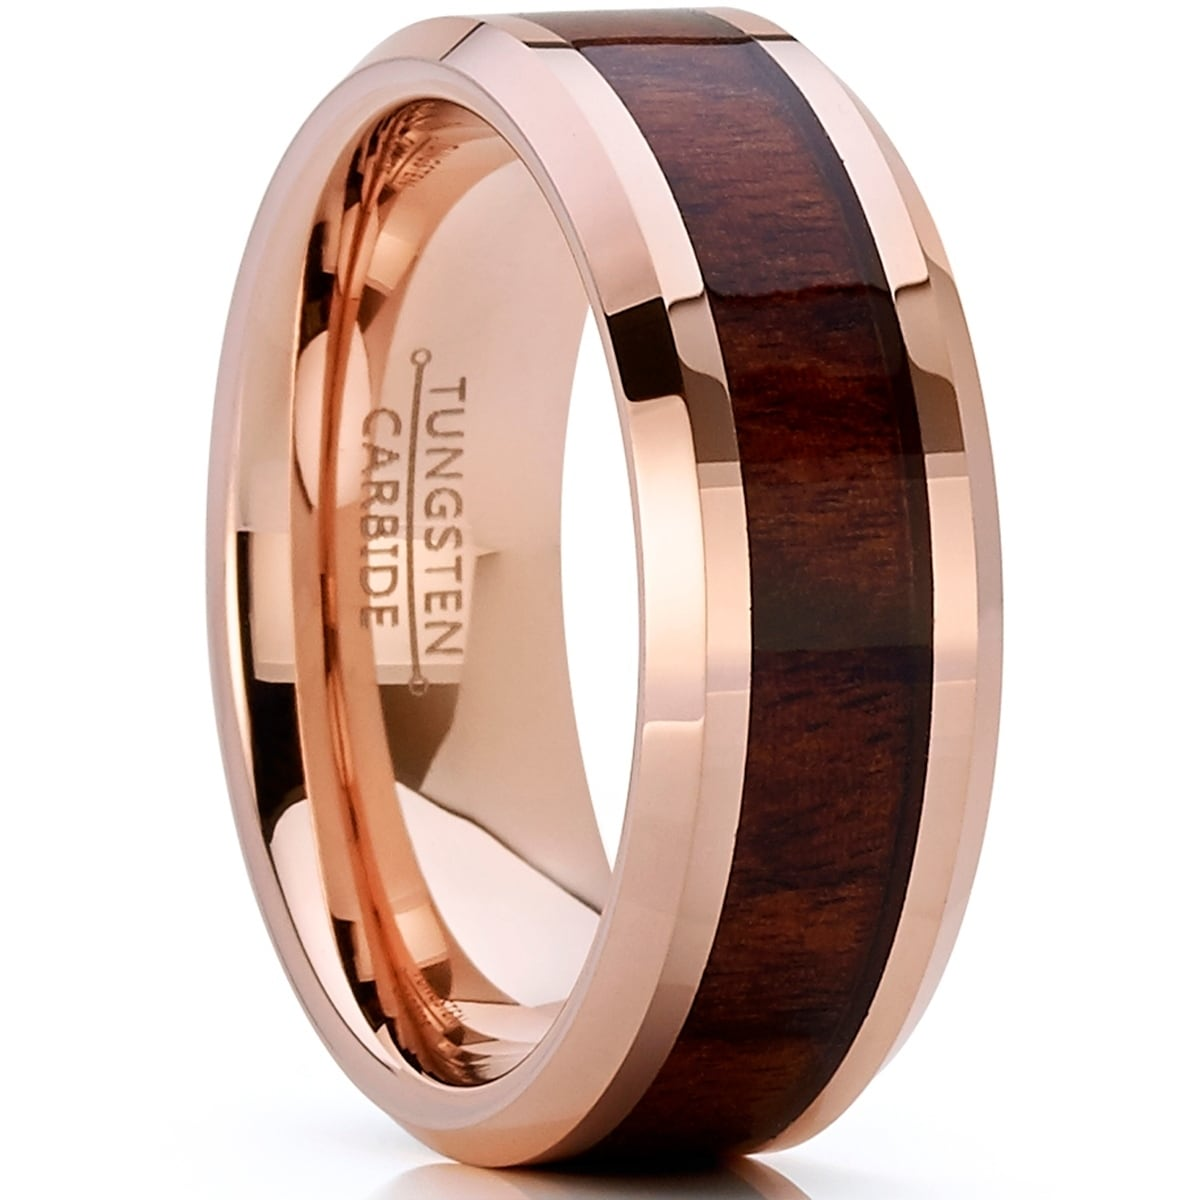 Shop Oliveti Rose Tone Tungsten Carbide Wedding Band Ring Real Wood